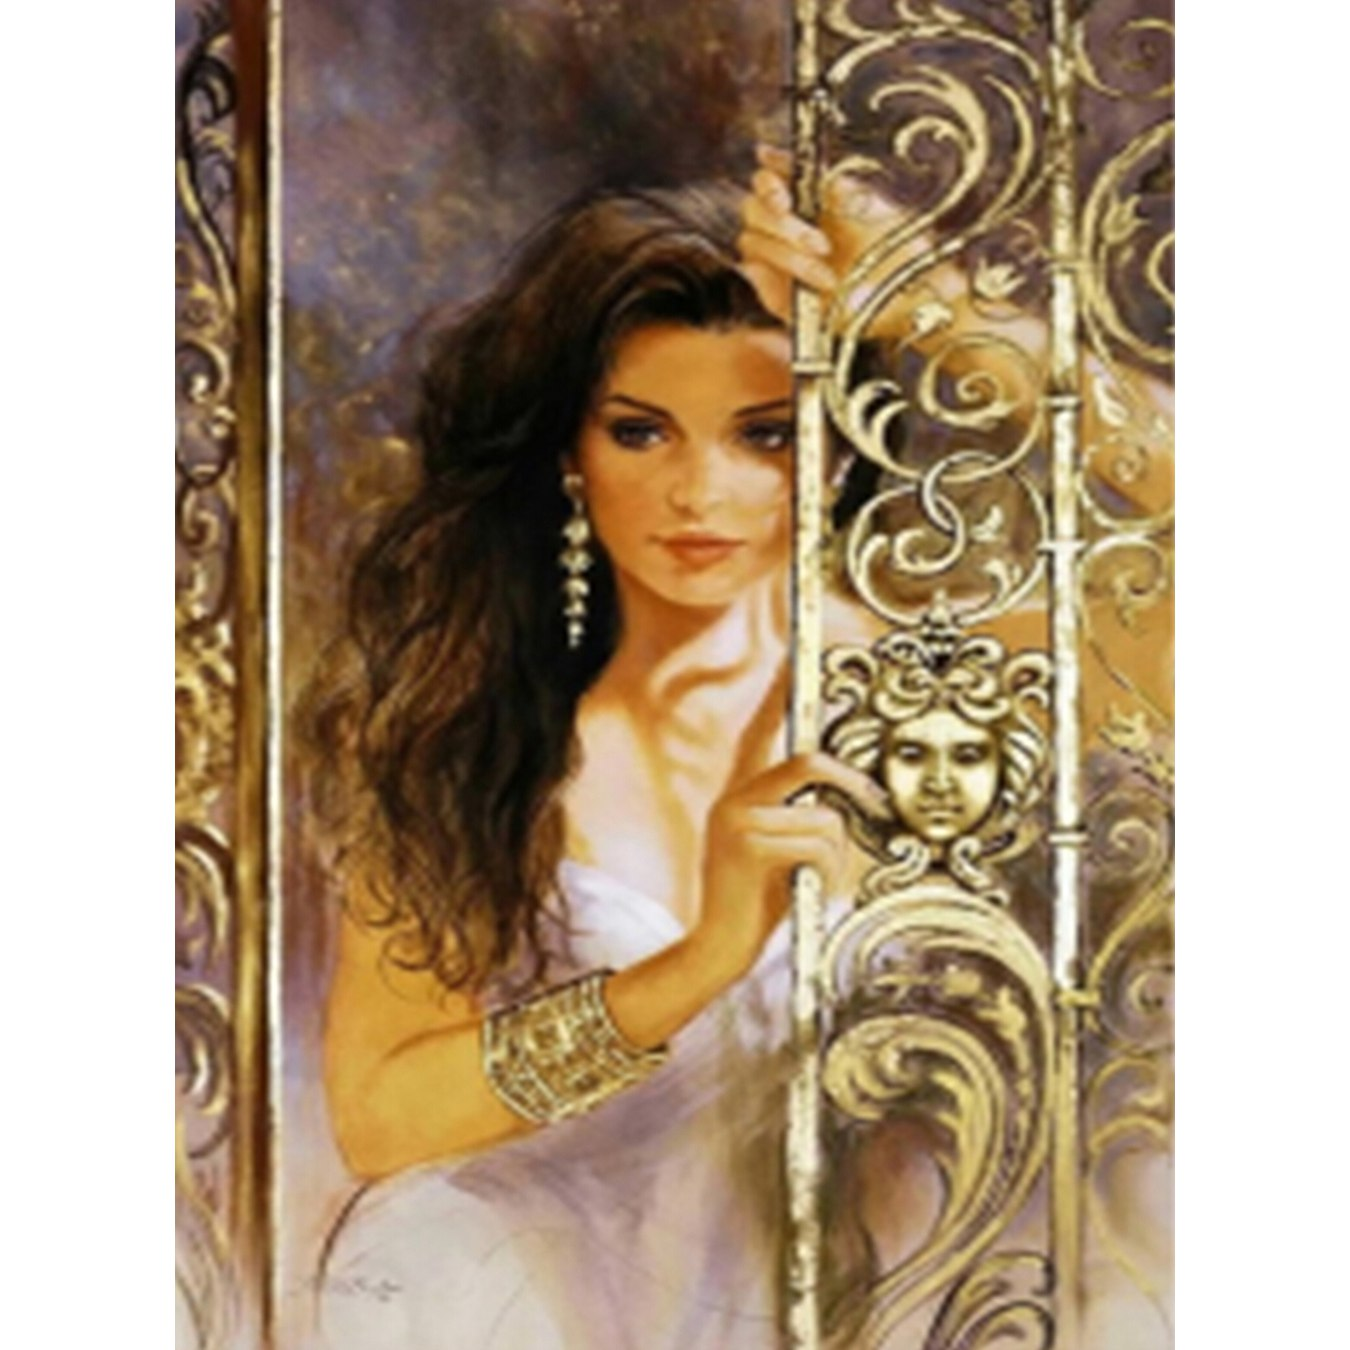 YTG Needlework Embroidery Beautiful Lady New Full 5D DIY Diamond Painting Cross Stitch Round Rhinestone Room Decor Gift